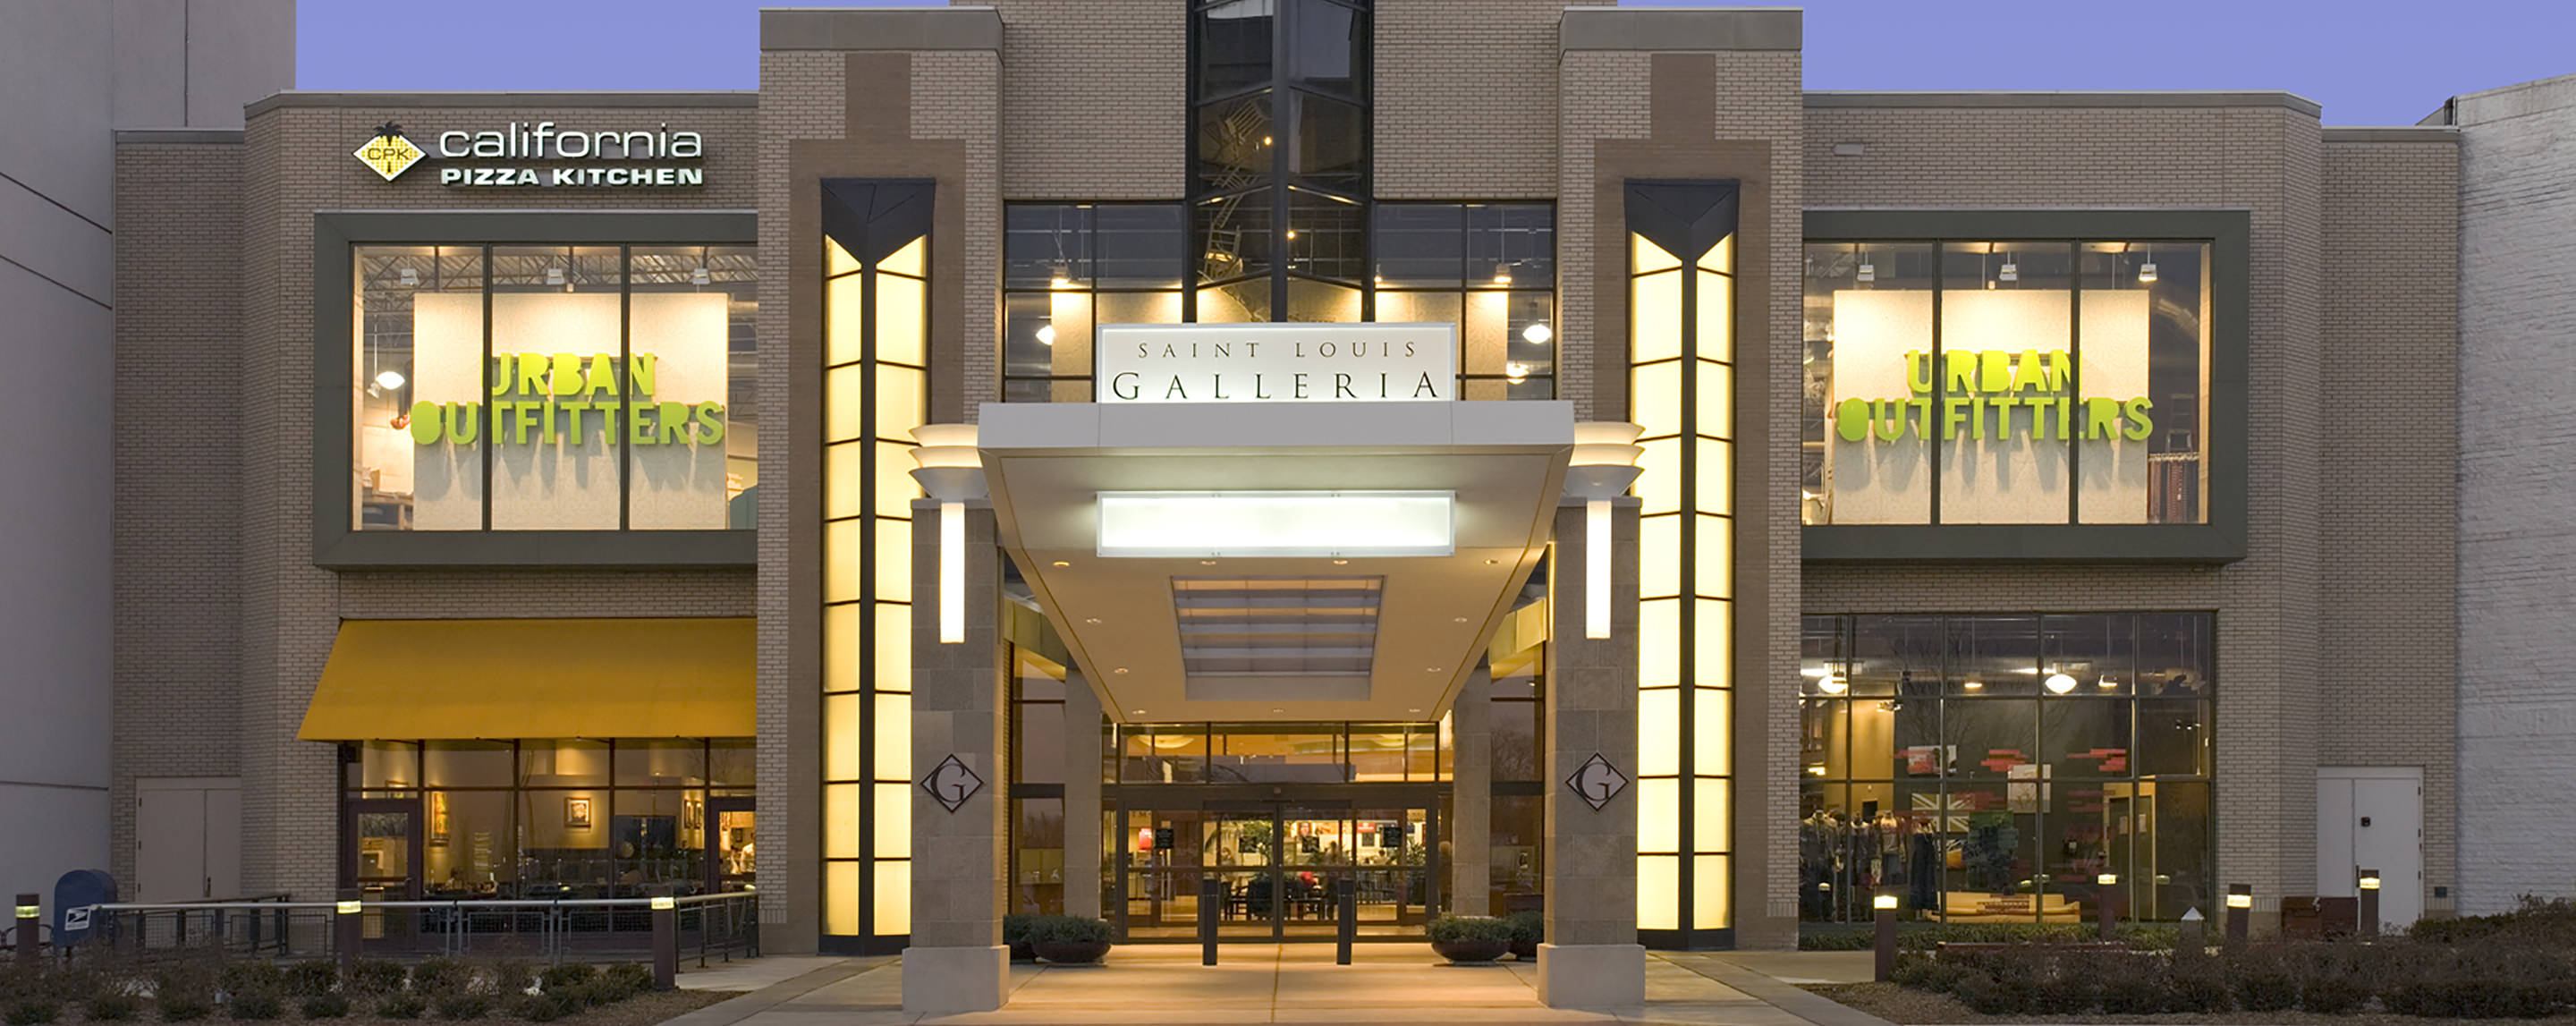 An exterior shot of the Saint Louis Galleria. An Outfitters storefront is visible.